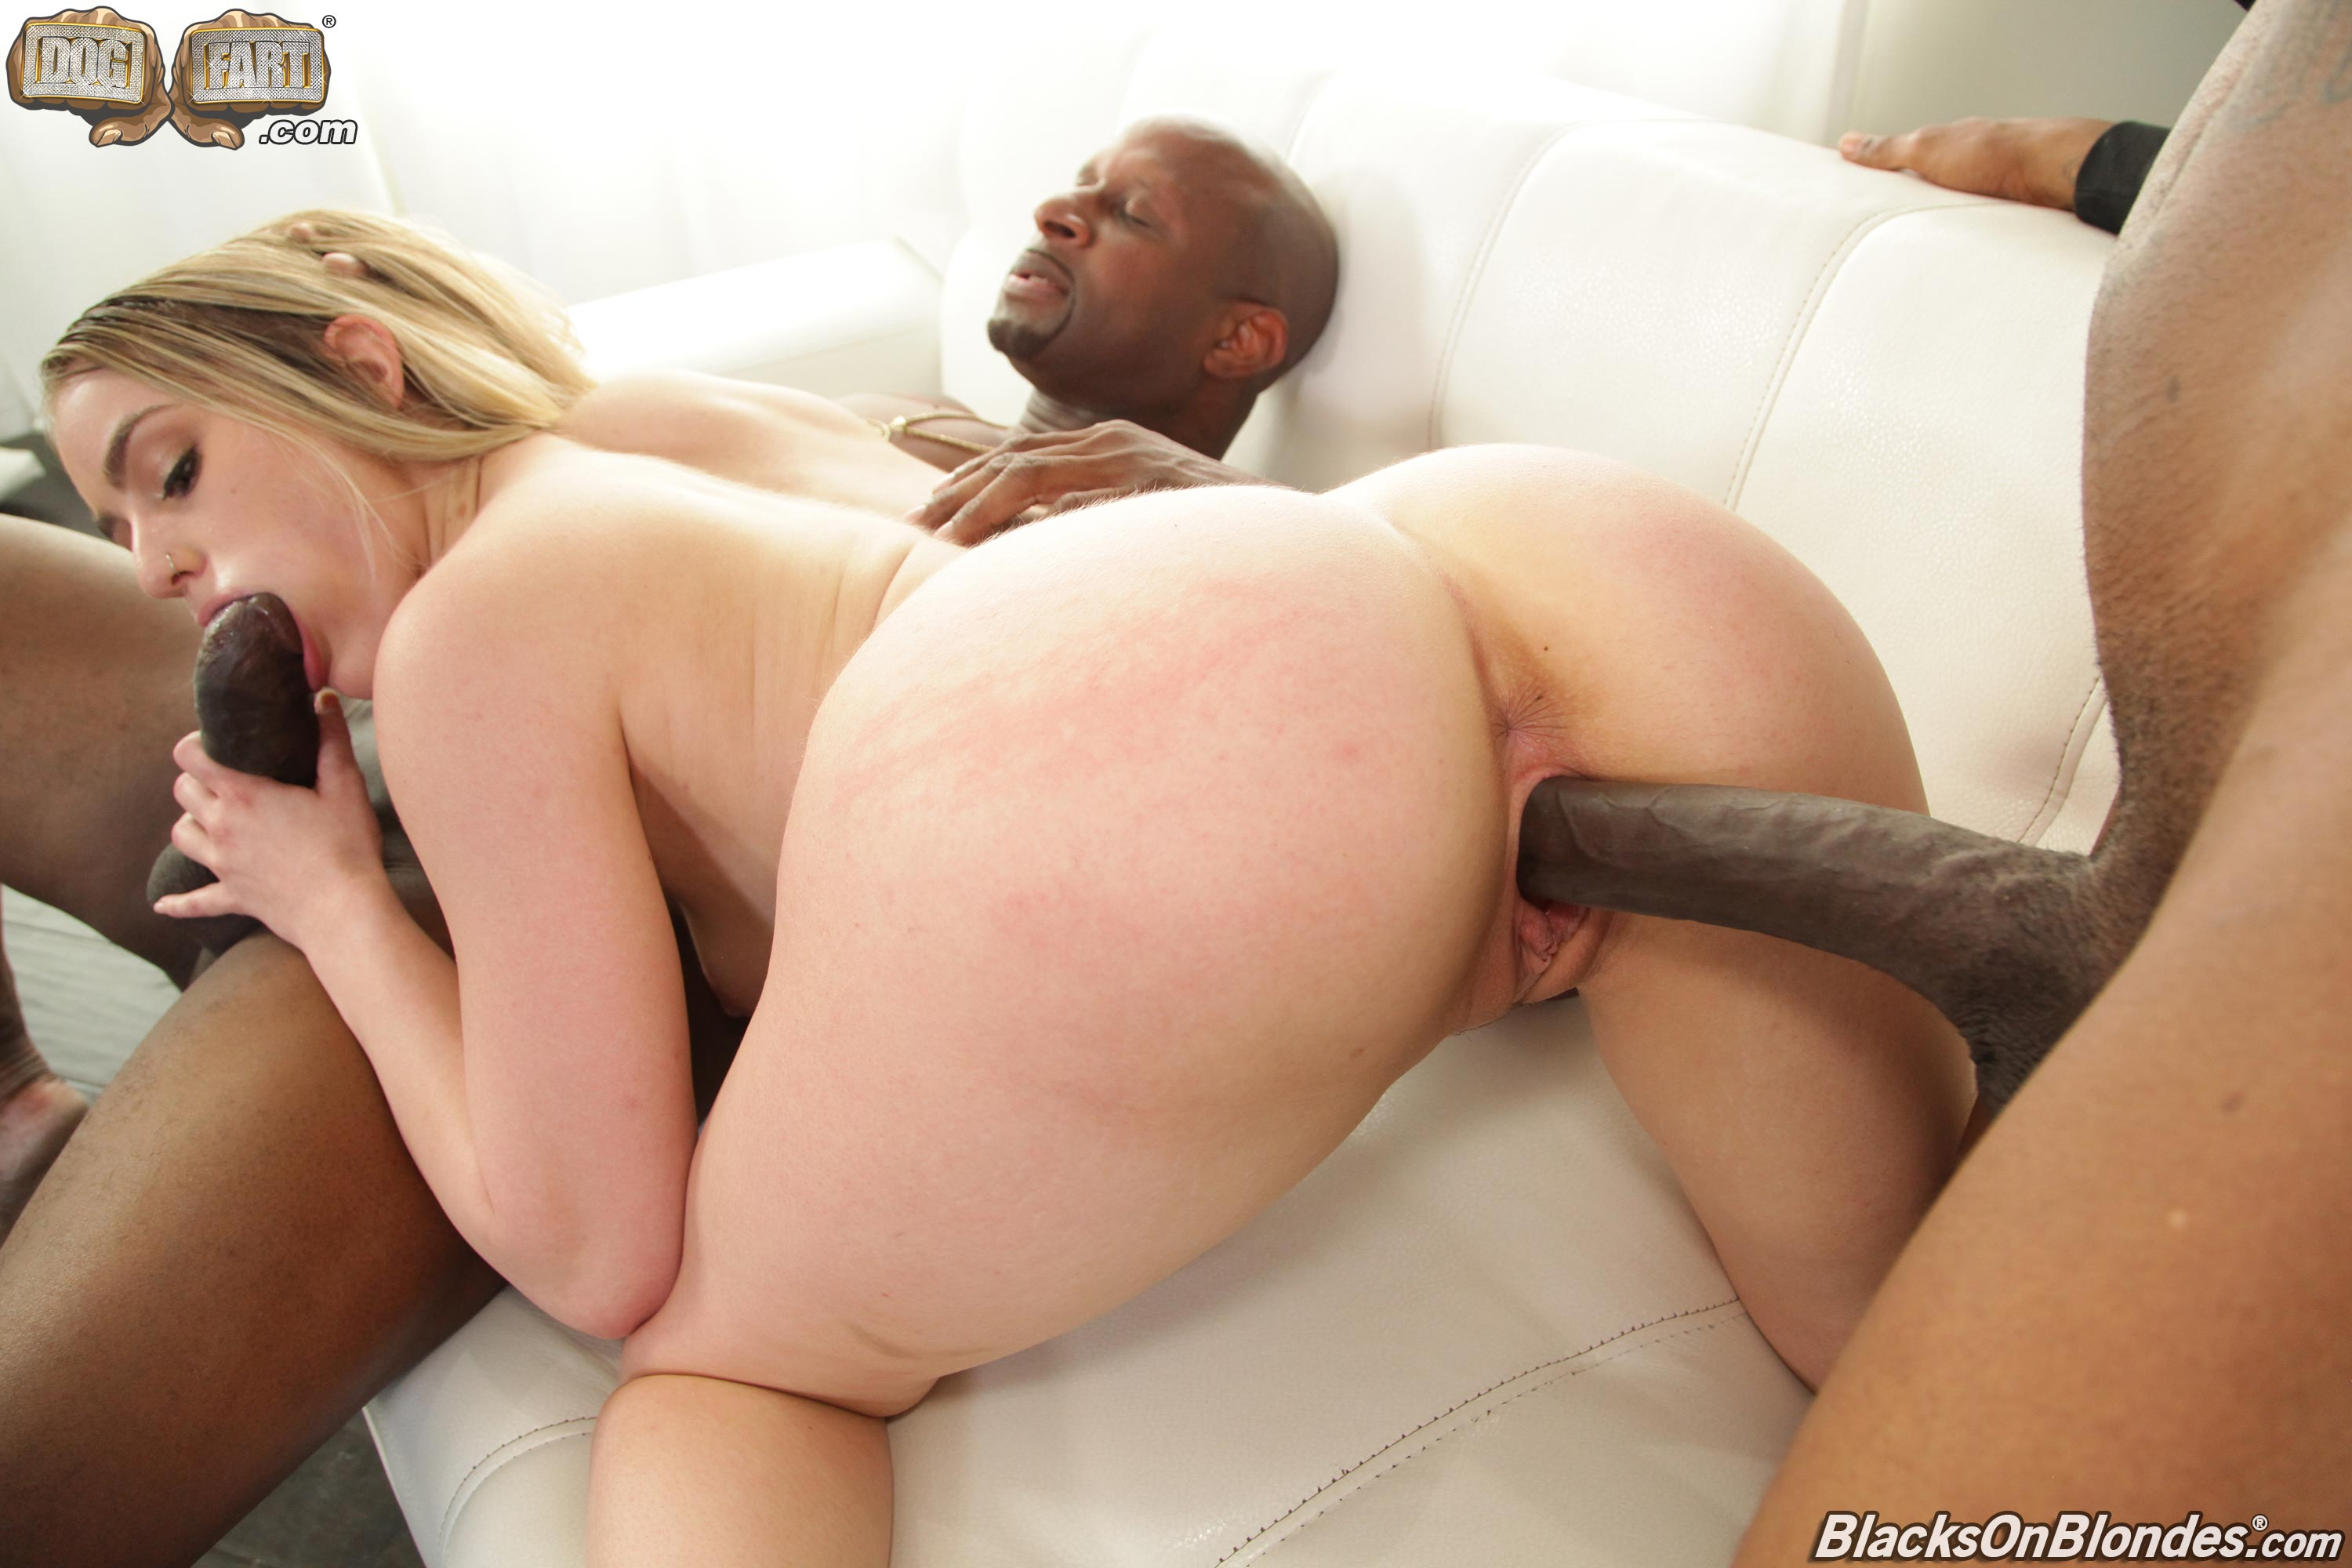 Dogfart '- Blacks On Blondes' starring Kenzie Madison (Photo 16)